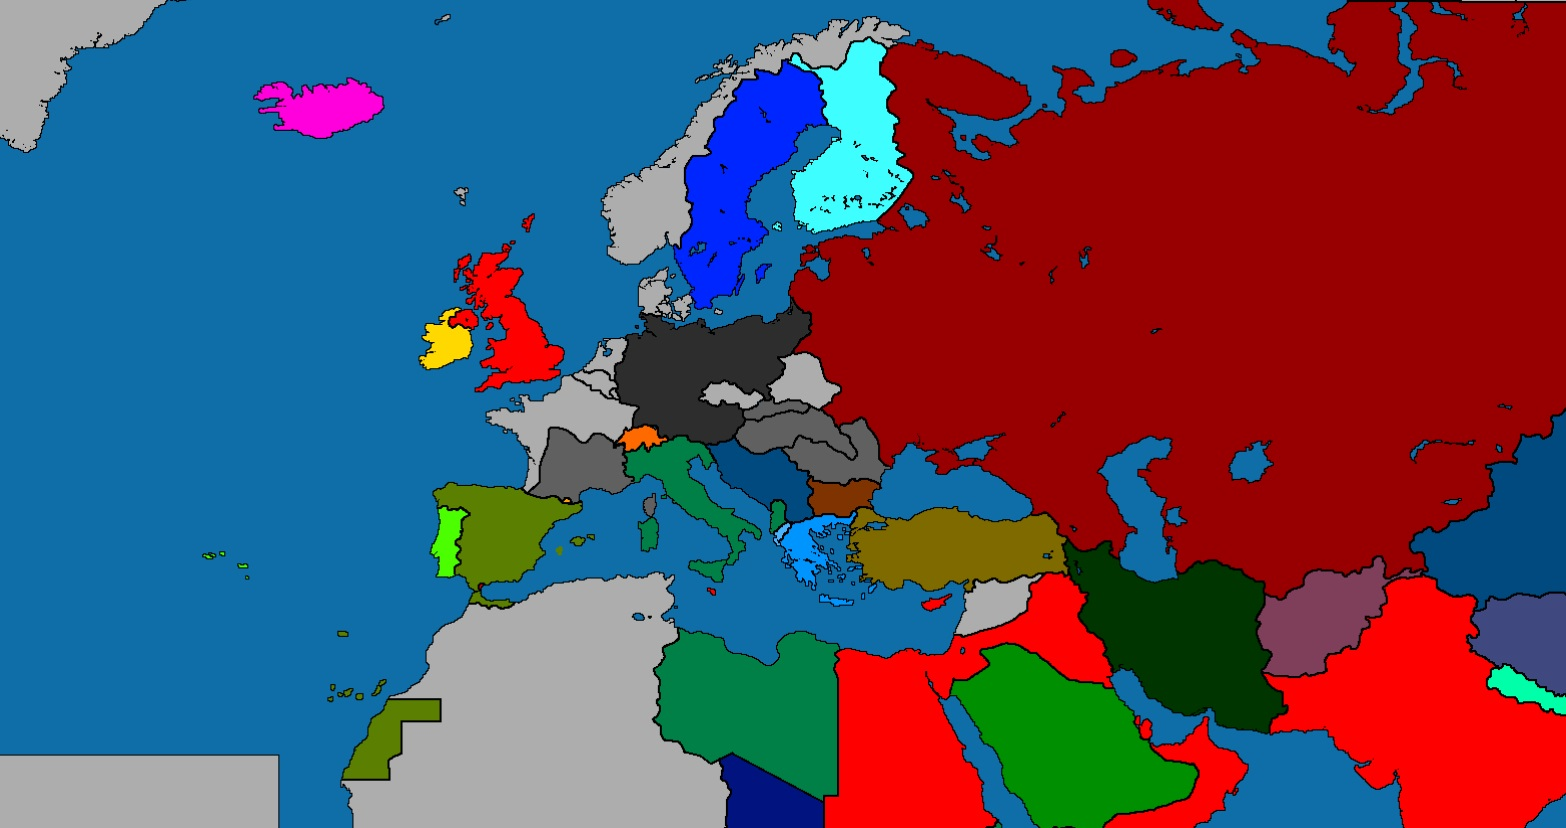 Europe Map In WW2 Period (1941)